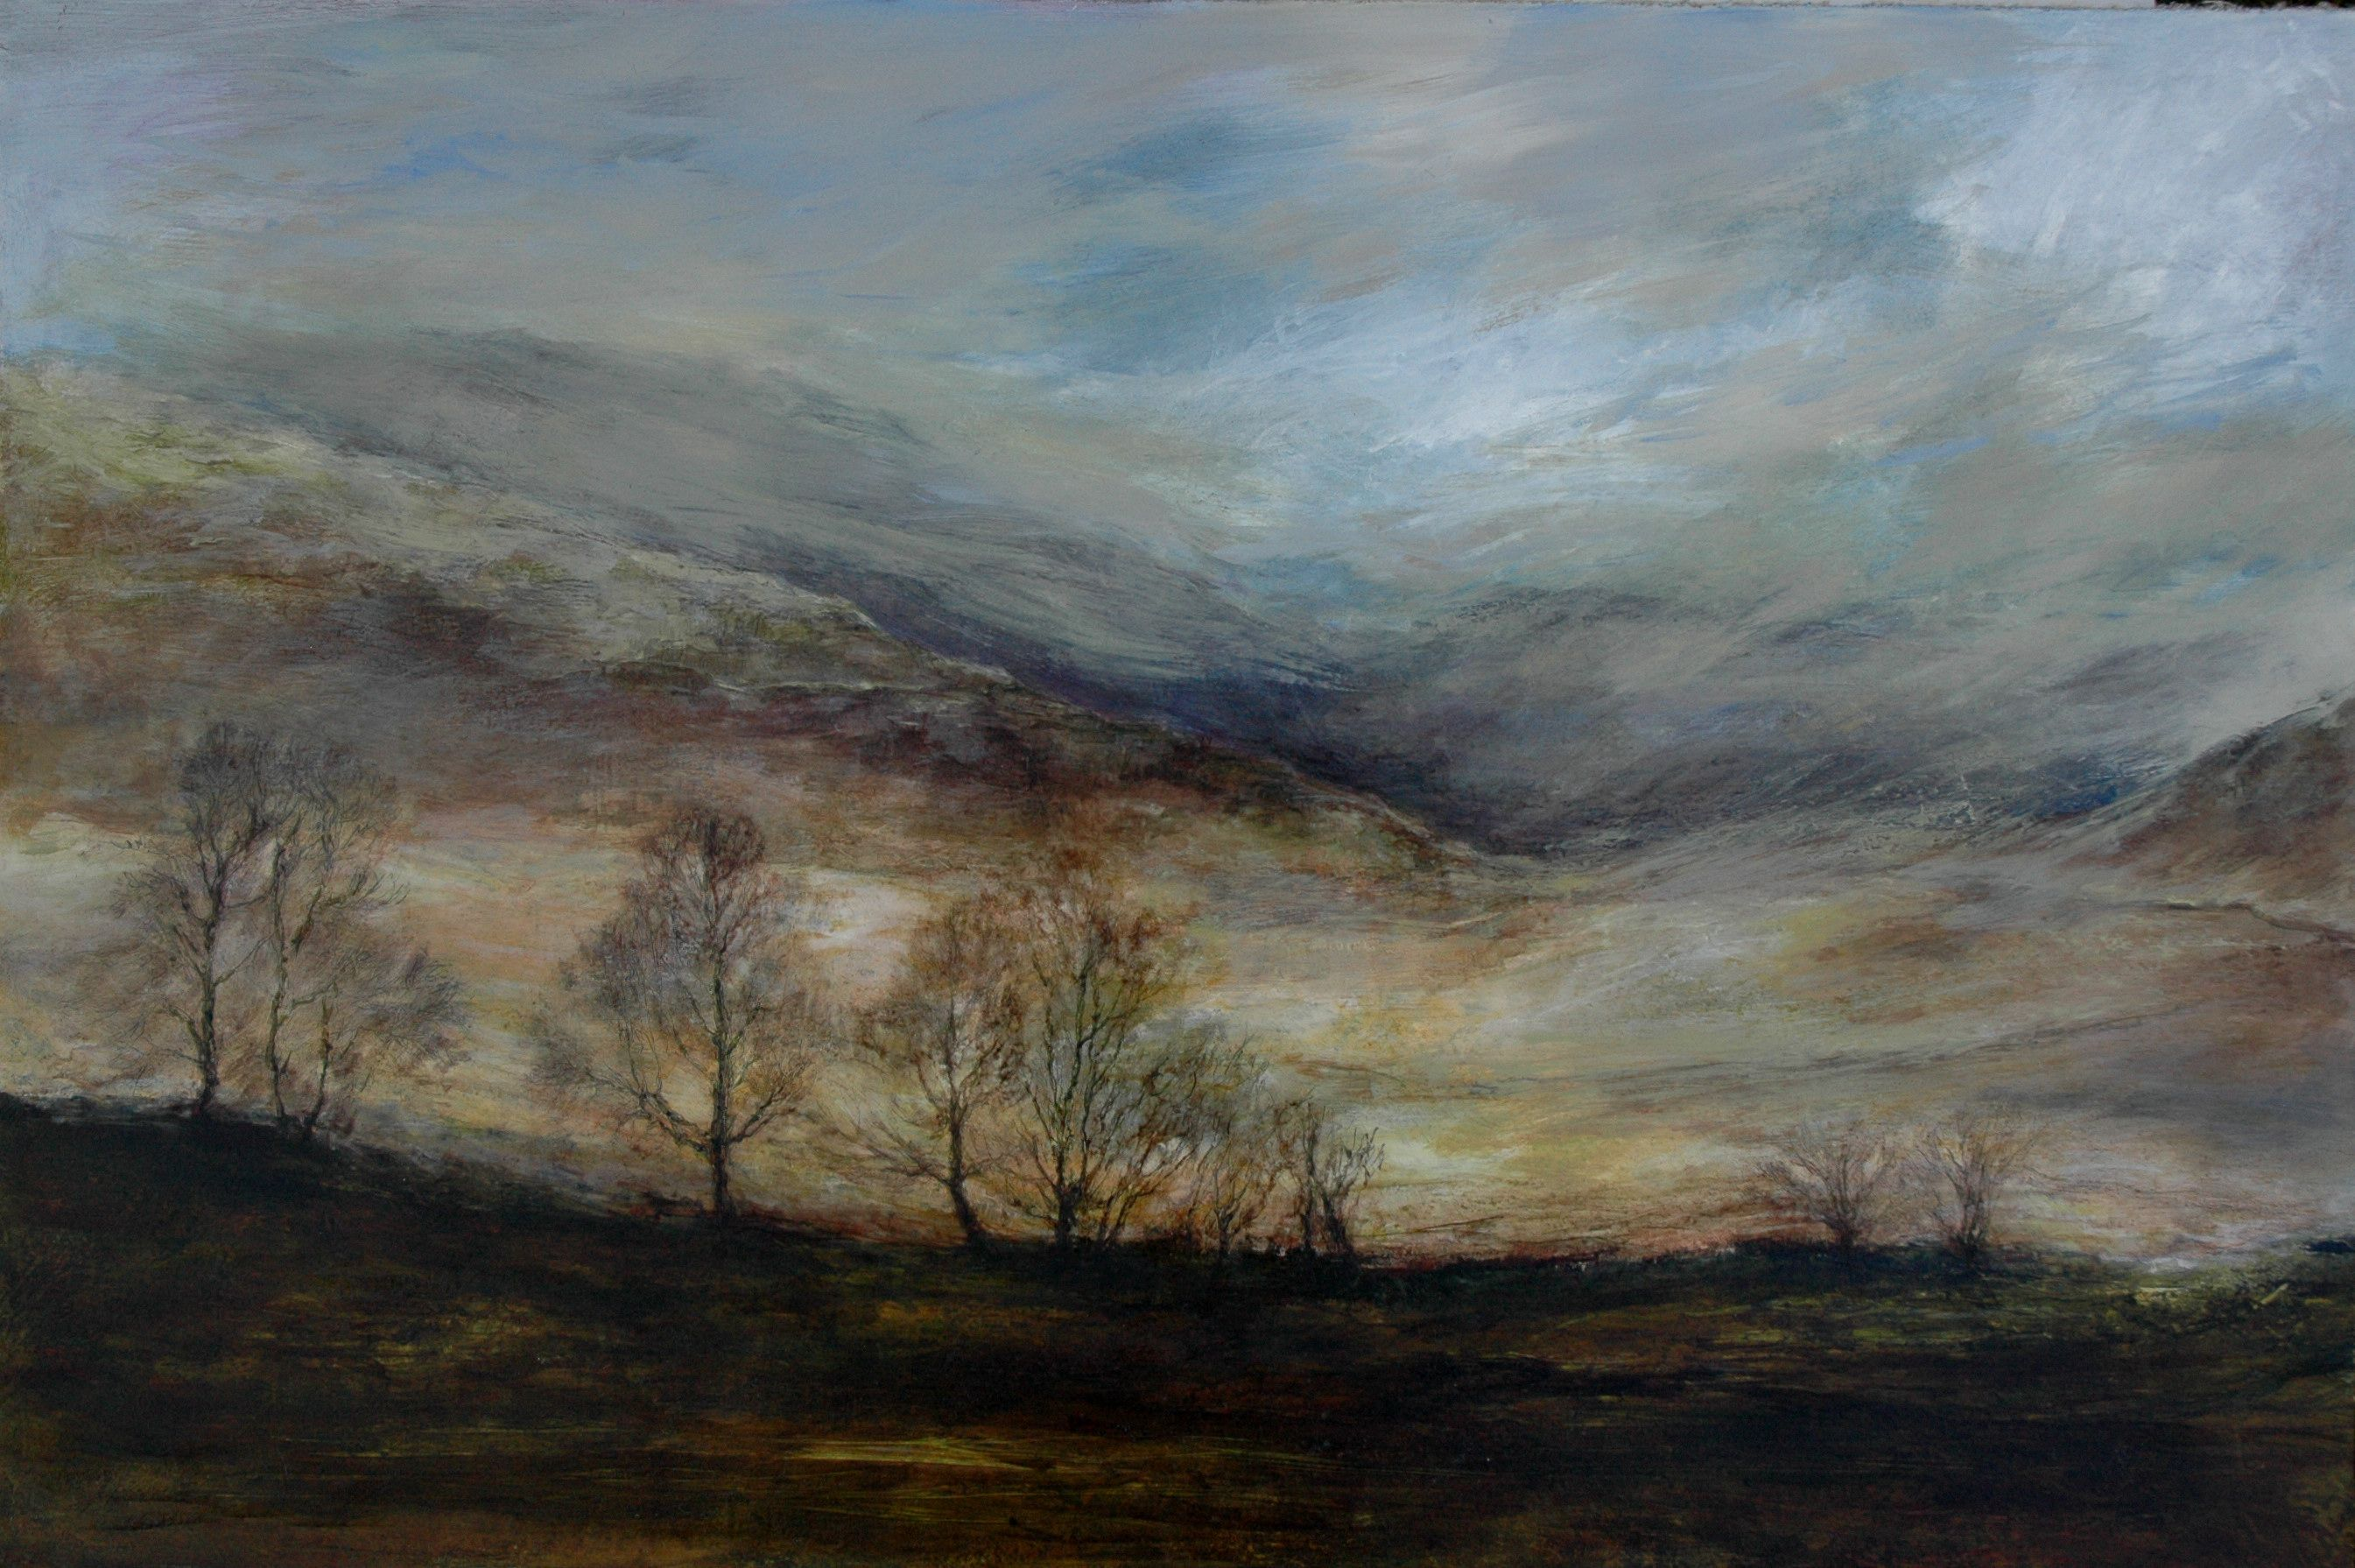 Sweet Auburn The Langdale Valley The Lake District Cumbria England Oil Painting On Board By Sue Contemporary Landscape Painting Landscape Paintings Painting